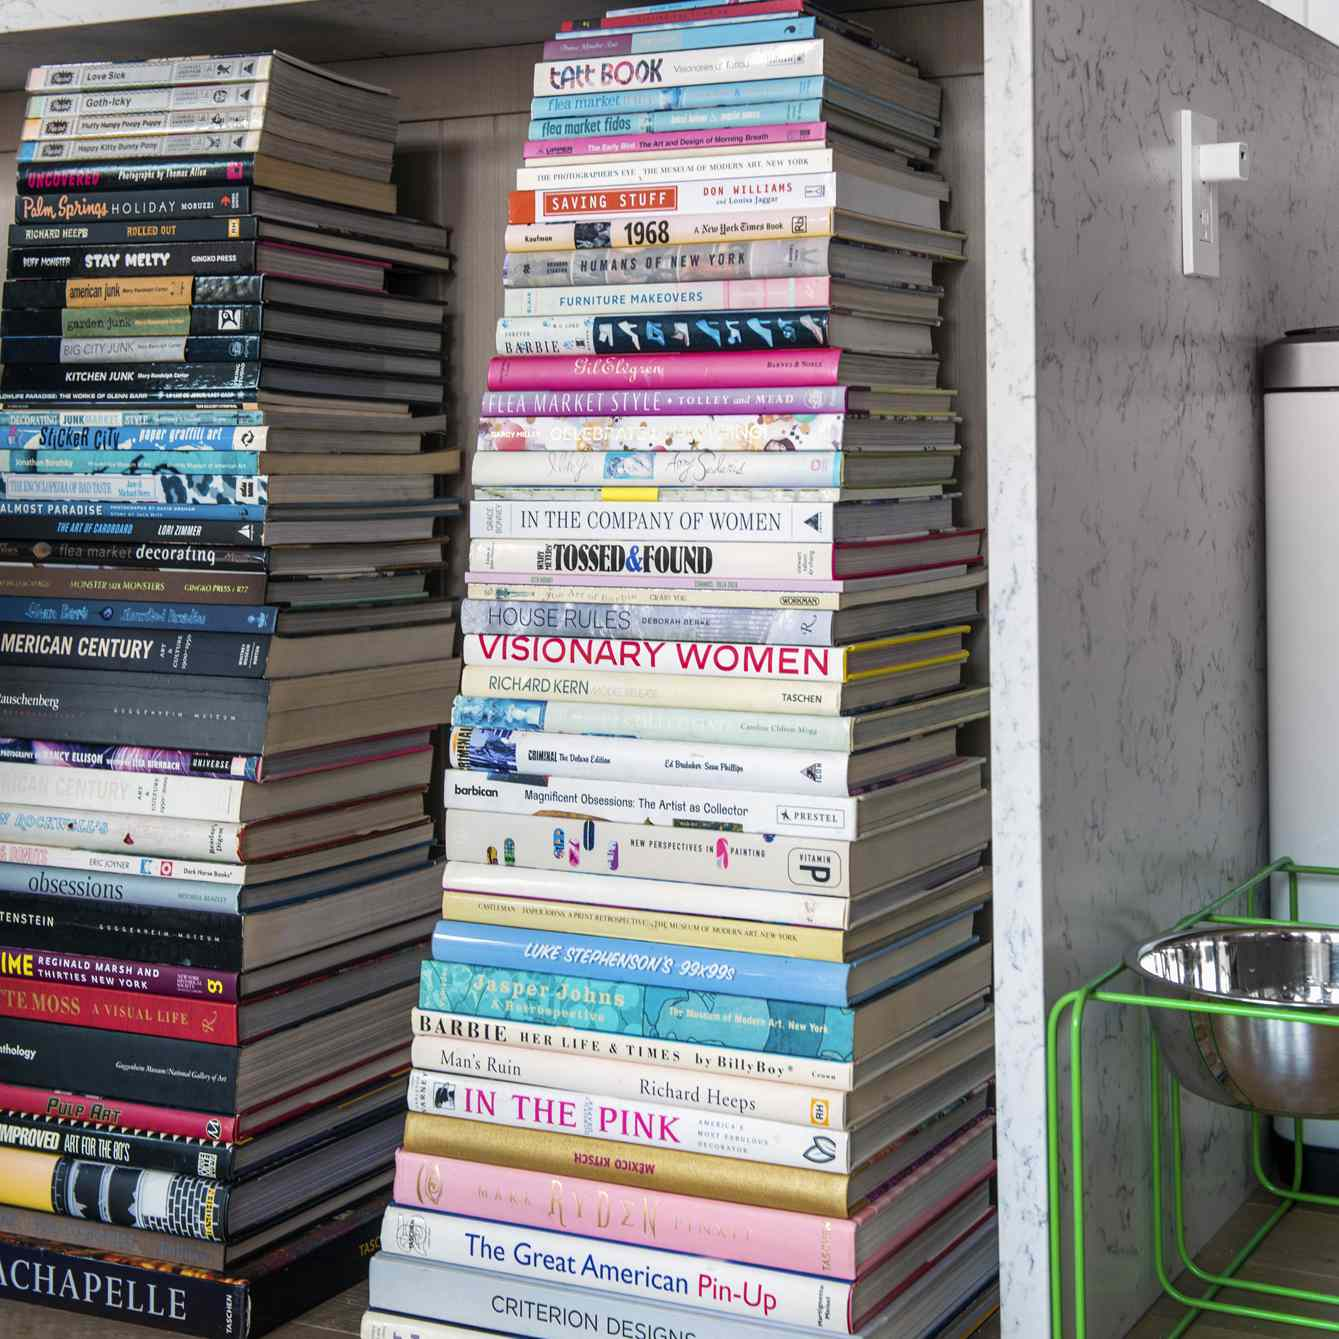 Curated books by apartmentjeanie